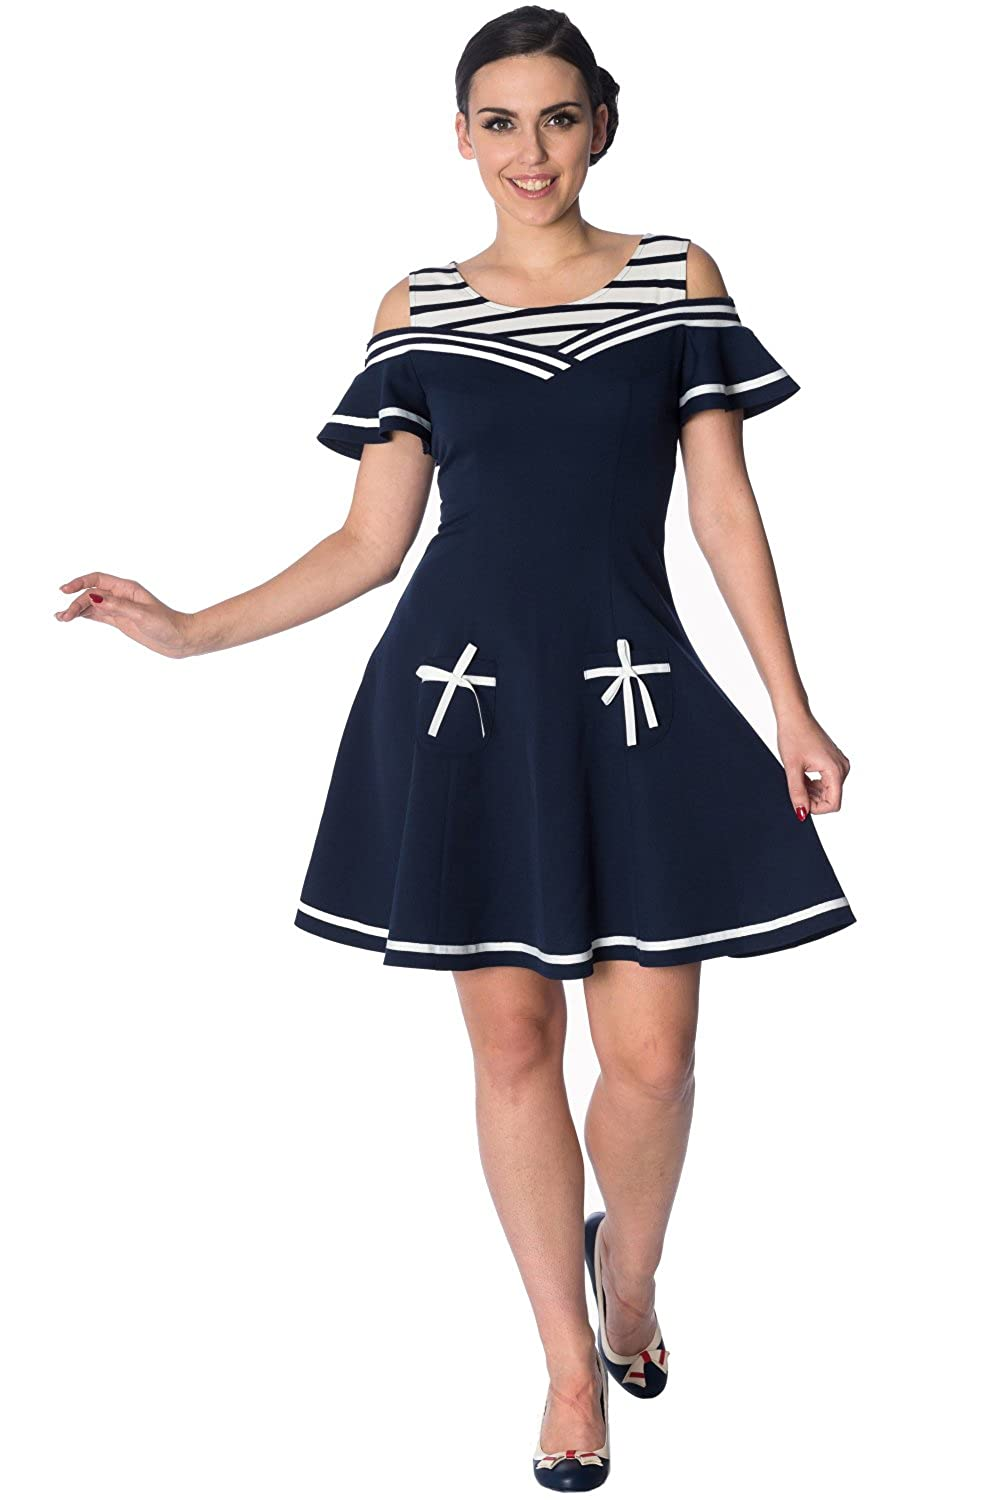 Sailor Dresses, Nautical Theme Dress, WW2 Dresses Banned Set Sail 2 Fer Vintage Nautical Dress $66.95 AT vintagedancer.com